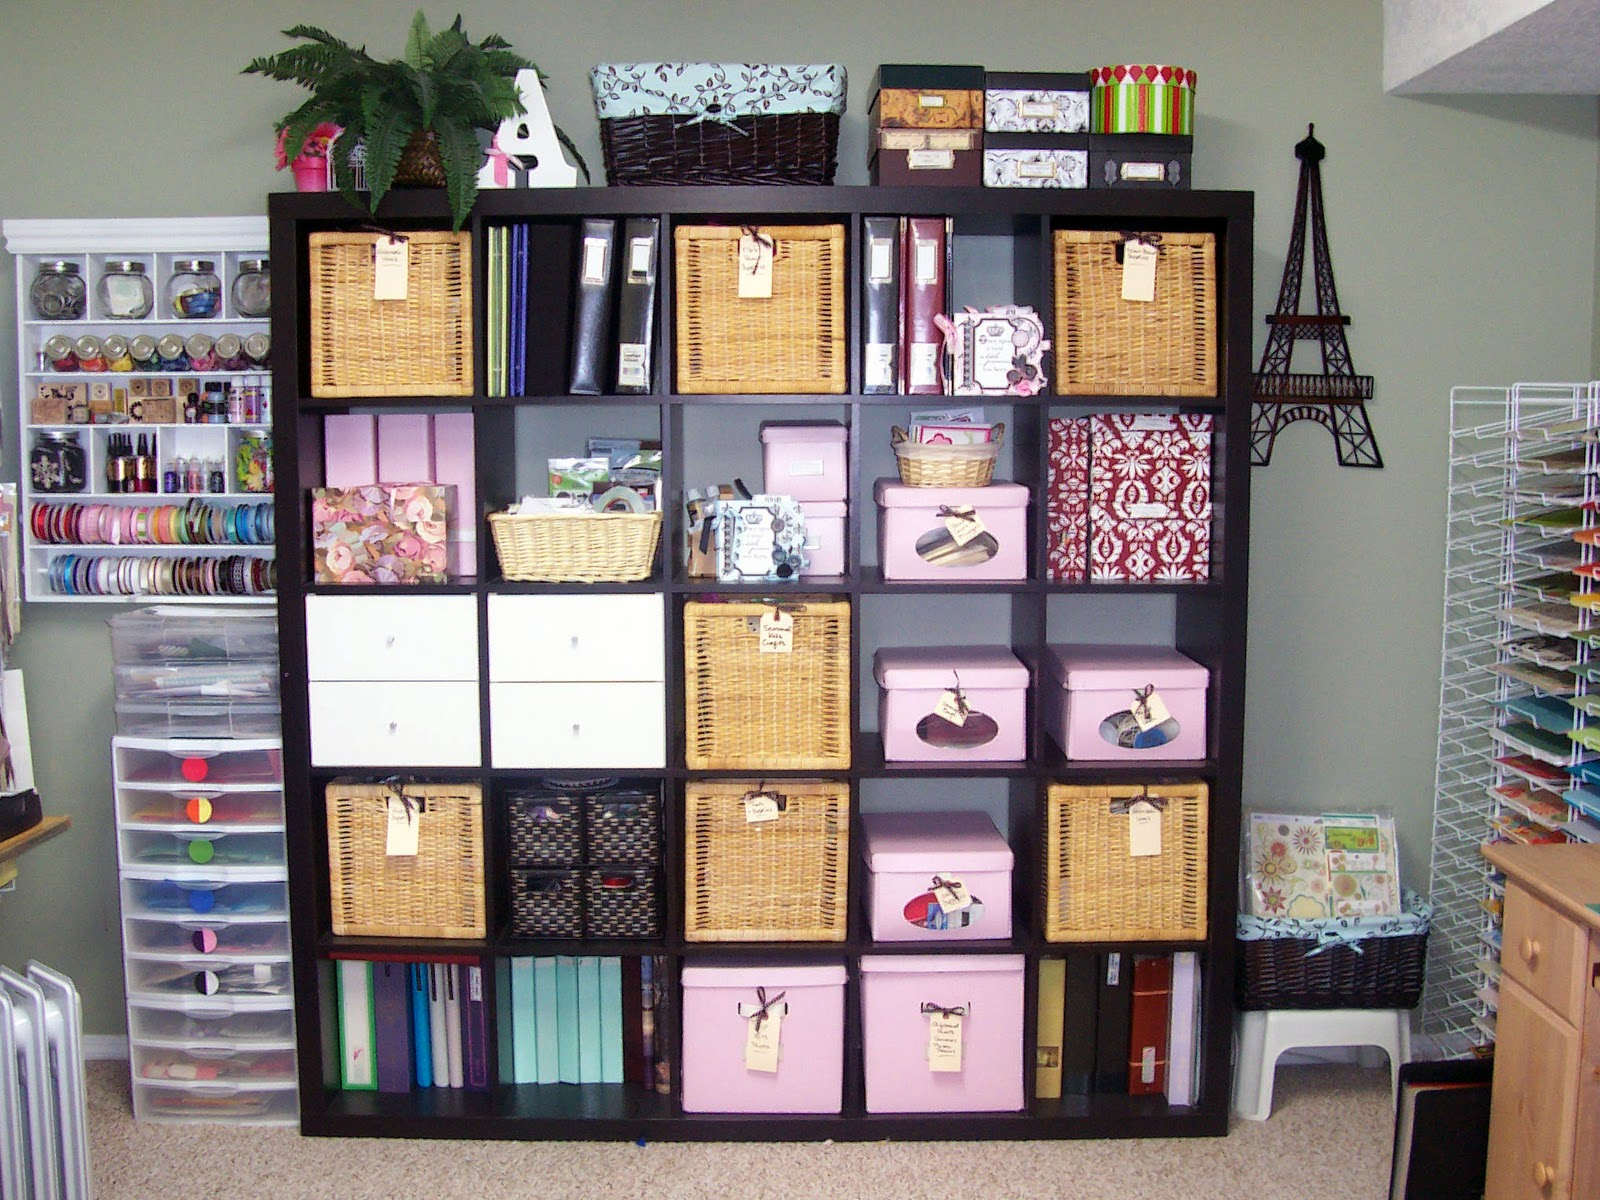 Ellabella designs creative scrapbook craft organizing Small room storage ideas ikea